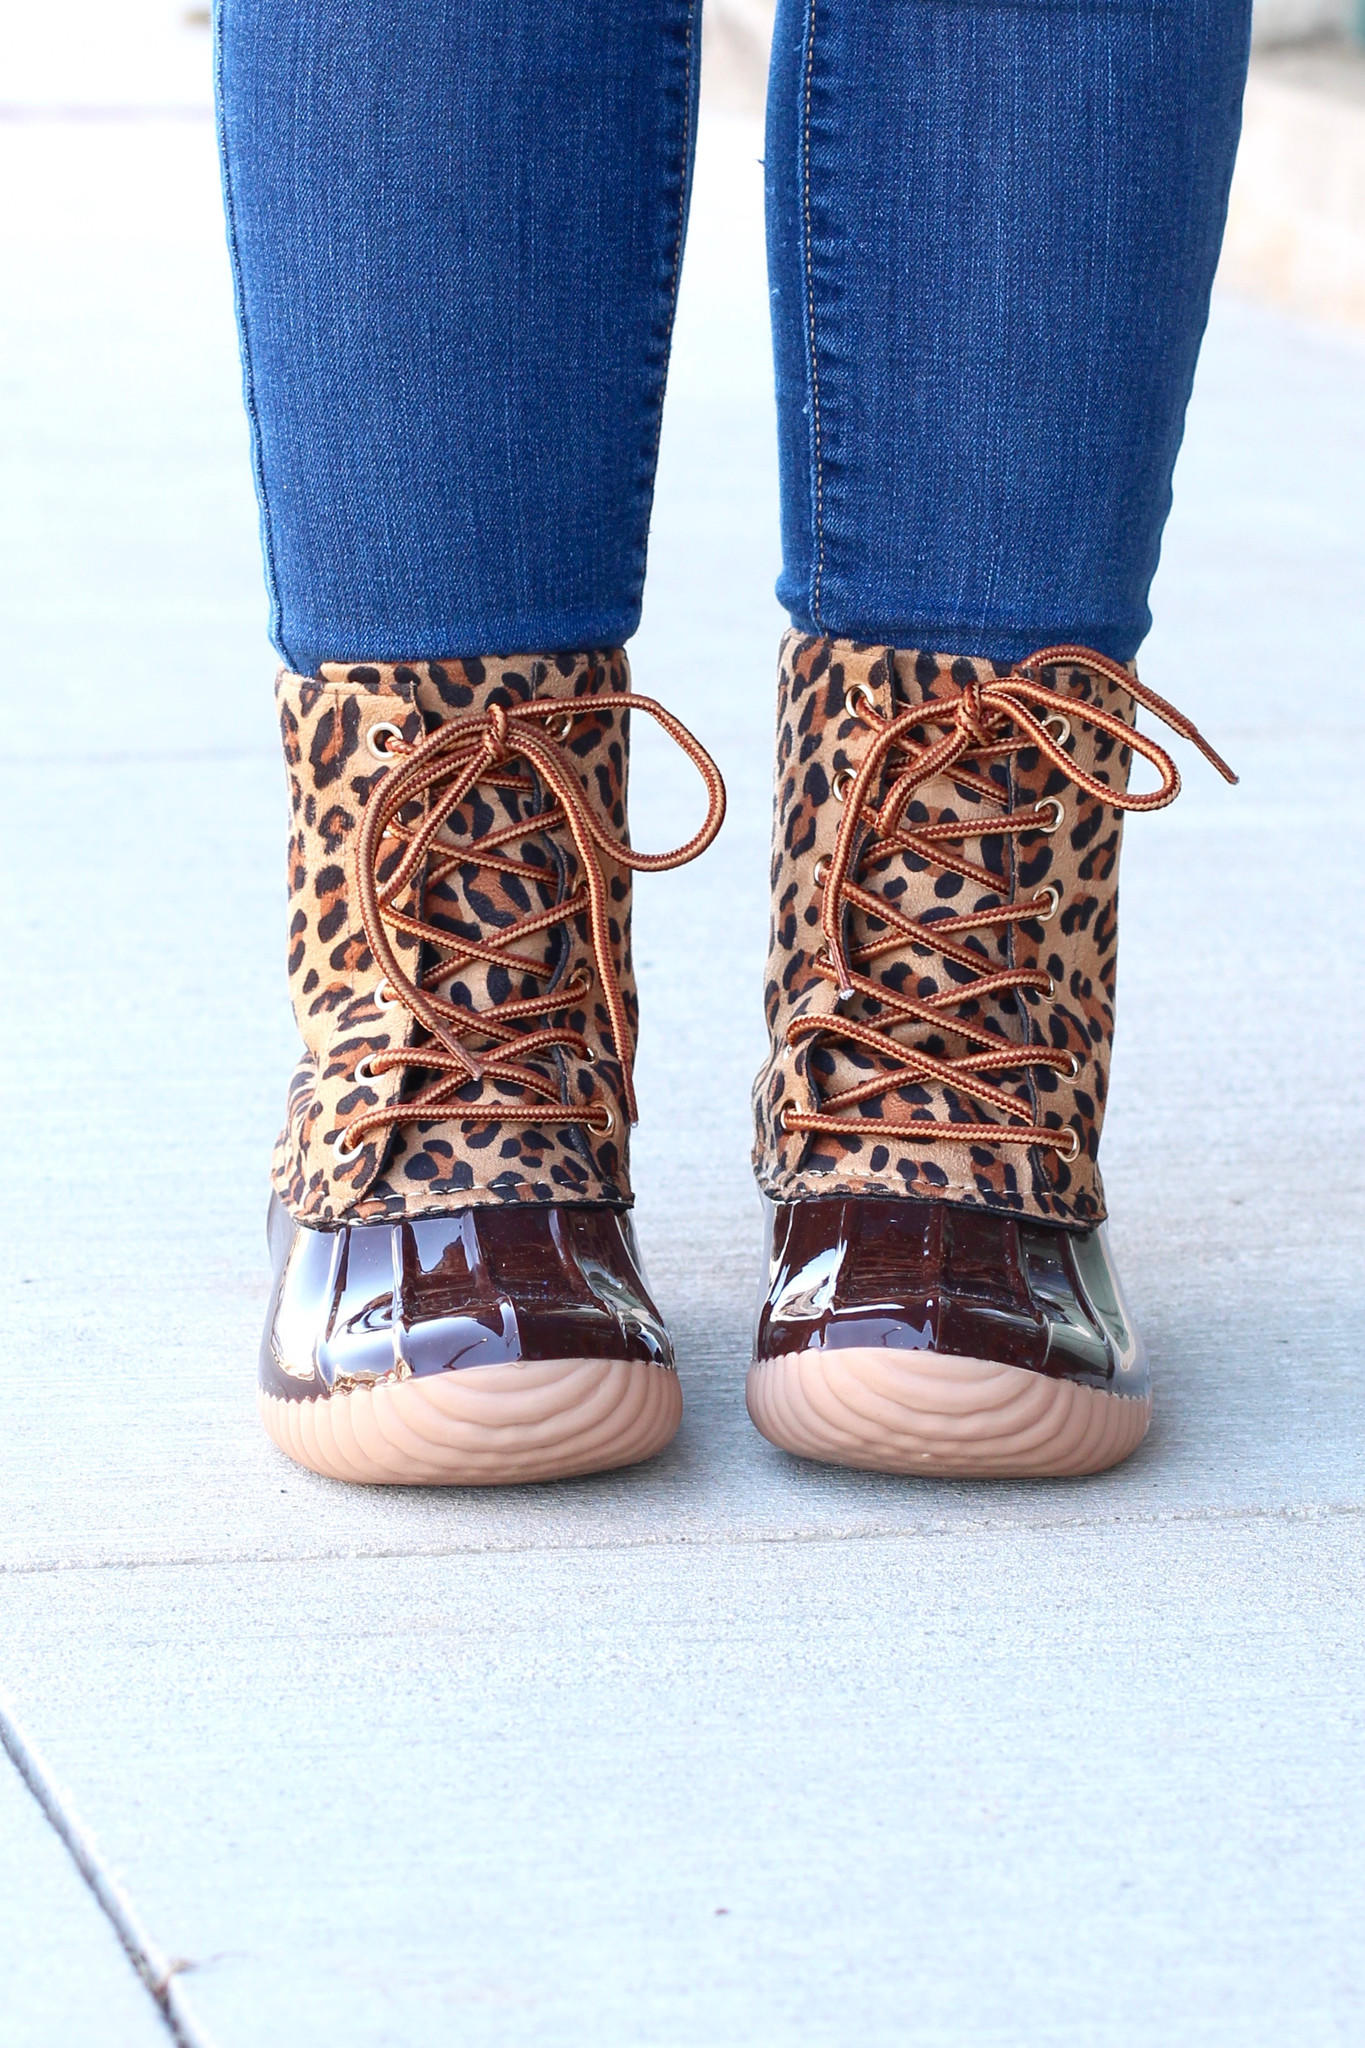 50fe944e9 Rosetta Classic Lined Duck Boots from The Fair Lady Boutique